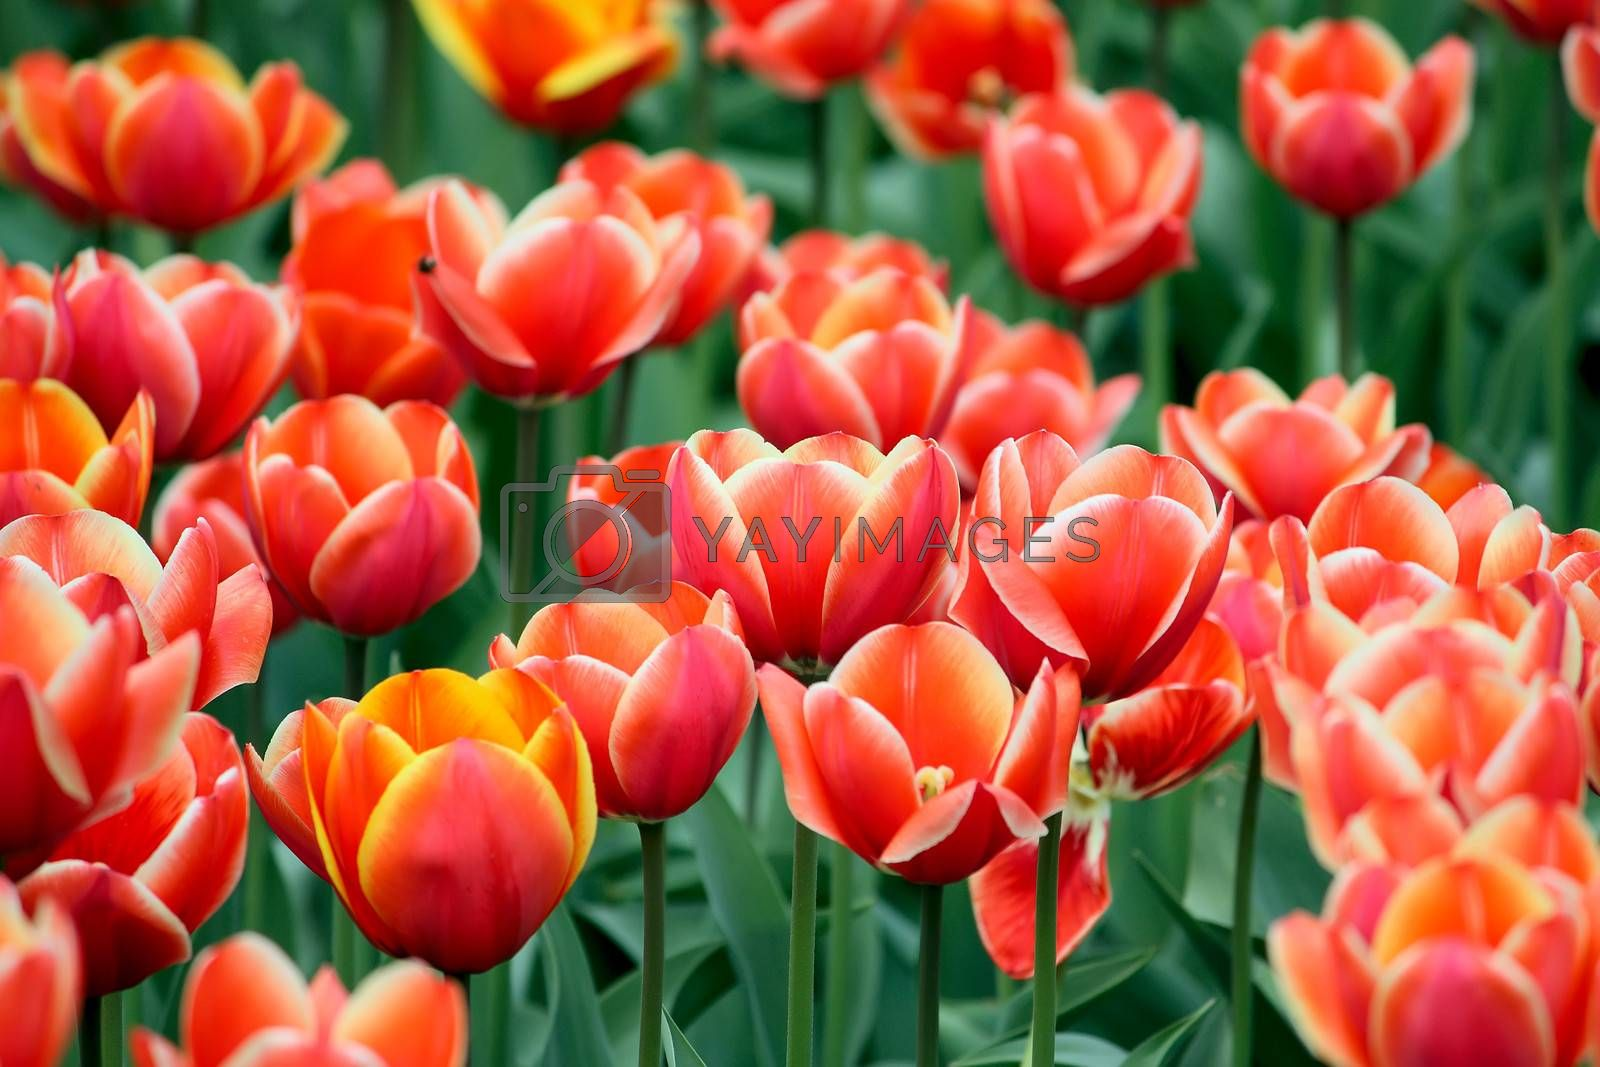 A lot of red tulips and some yellow among them